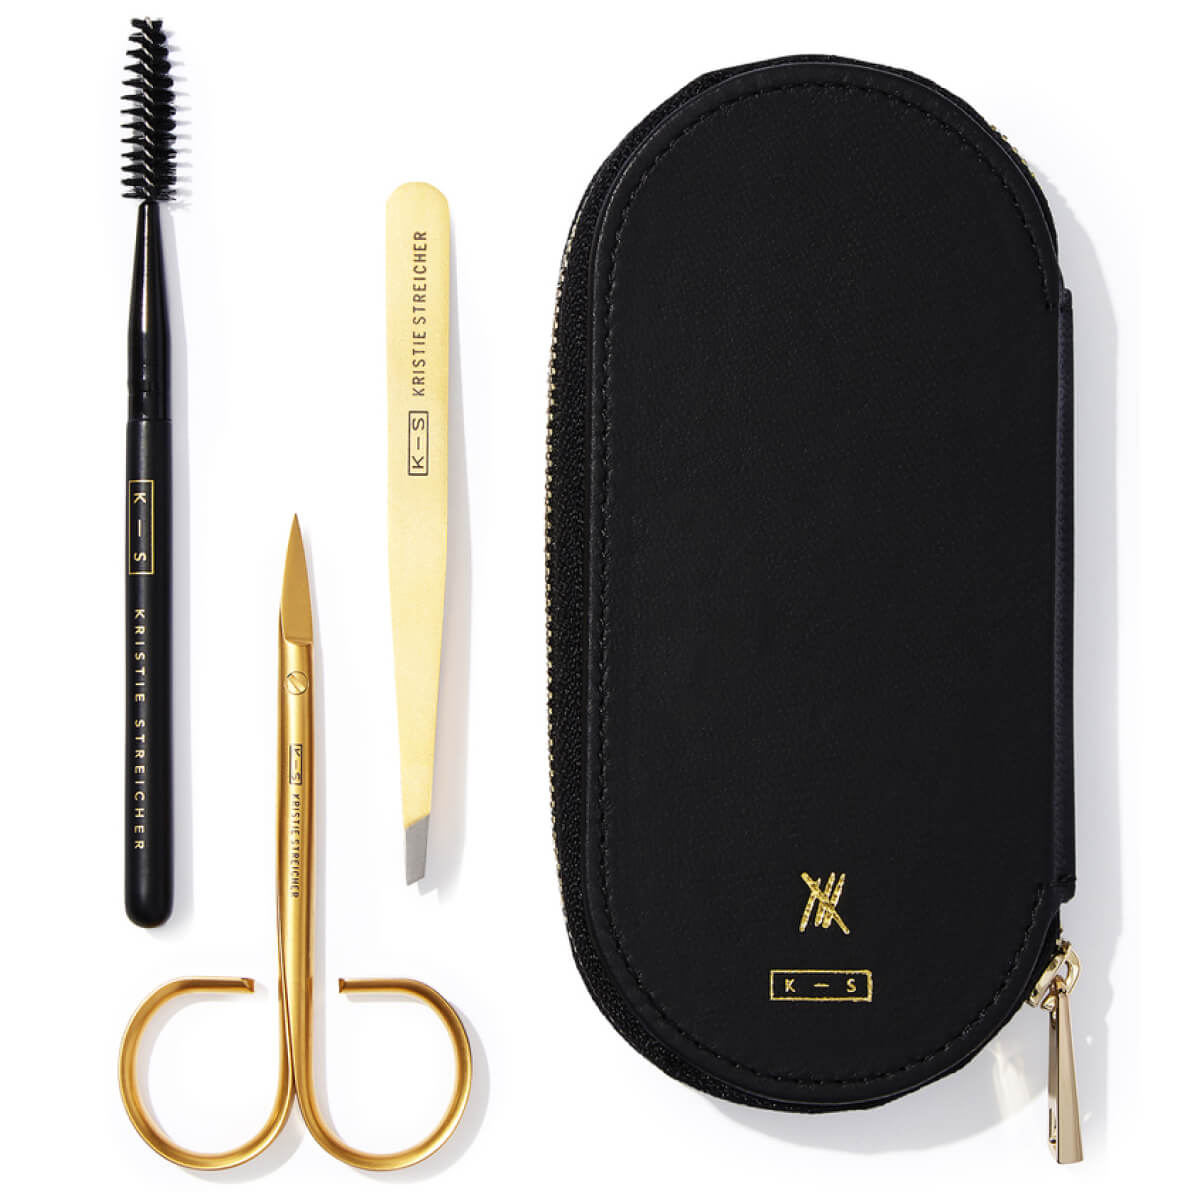 Kristie Streicher Essential Eyebrow Grooming Kit